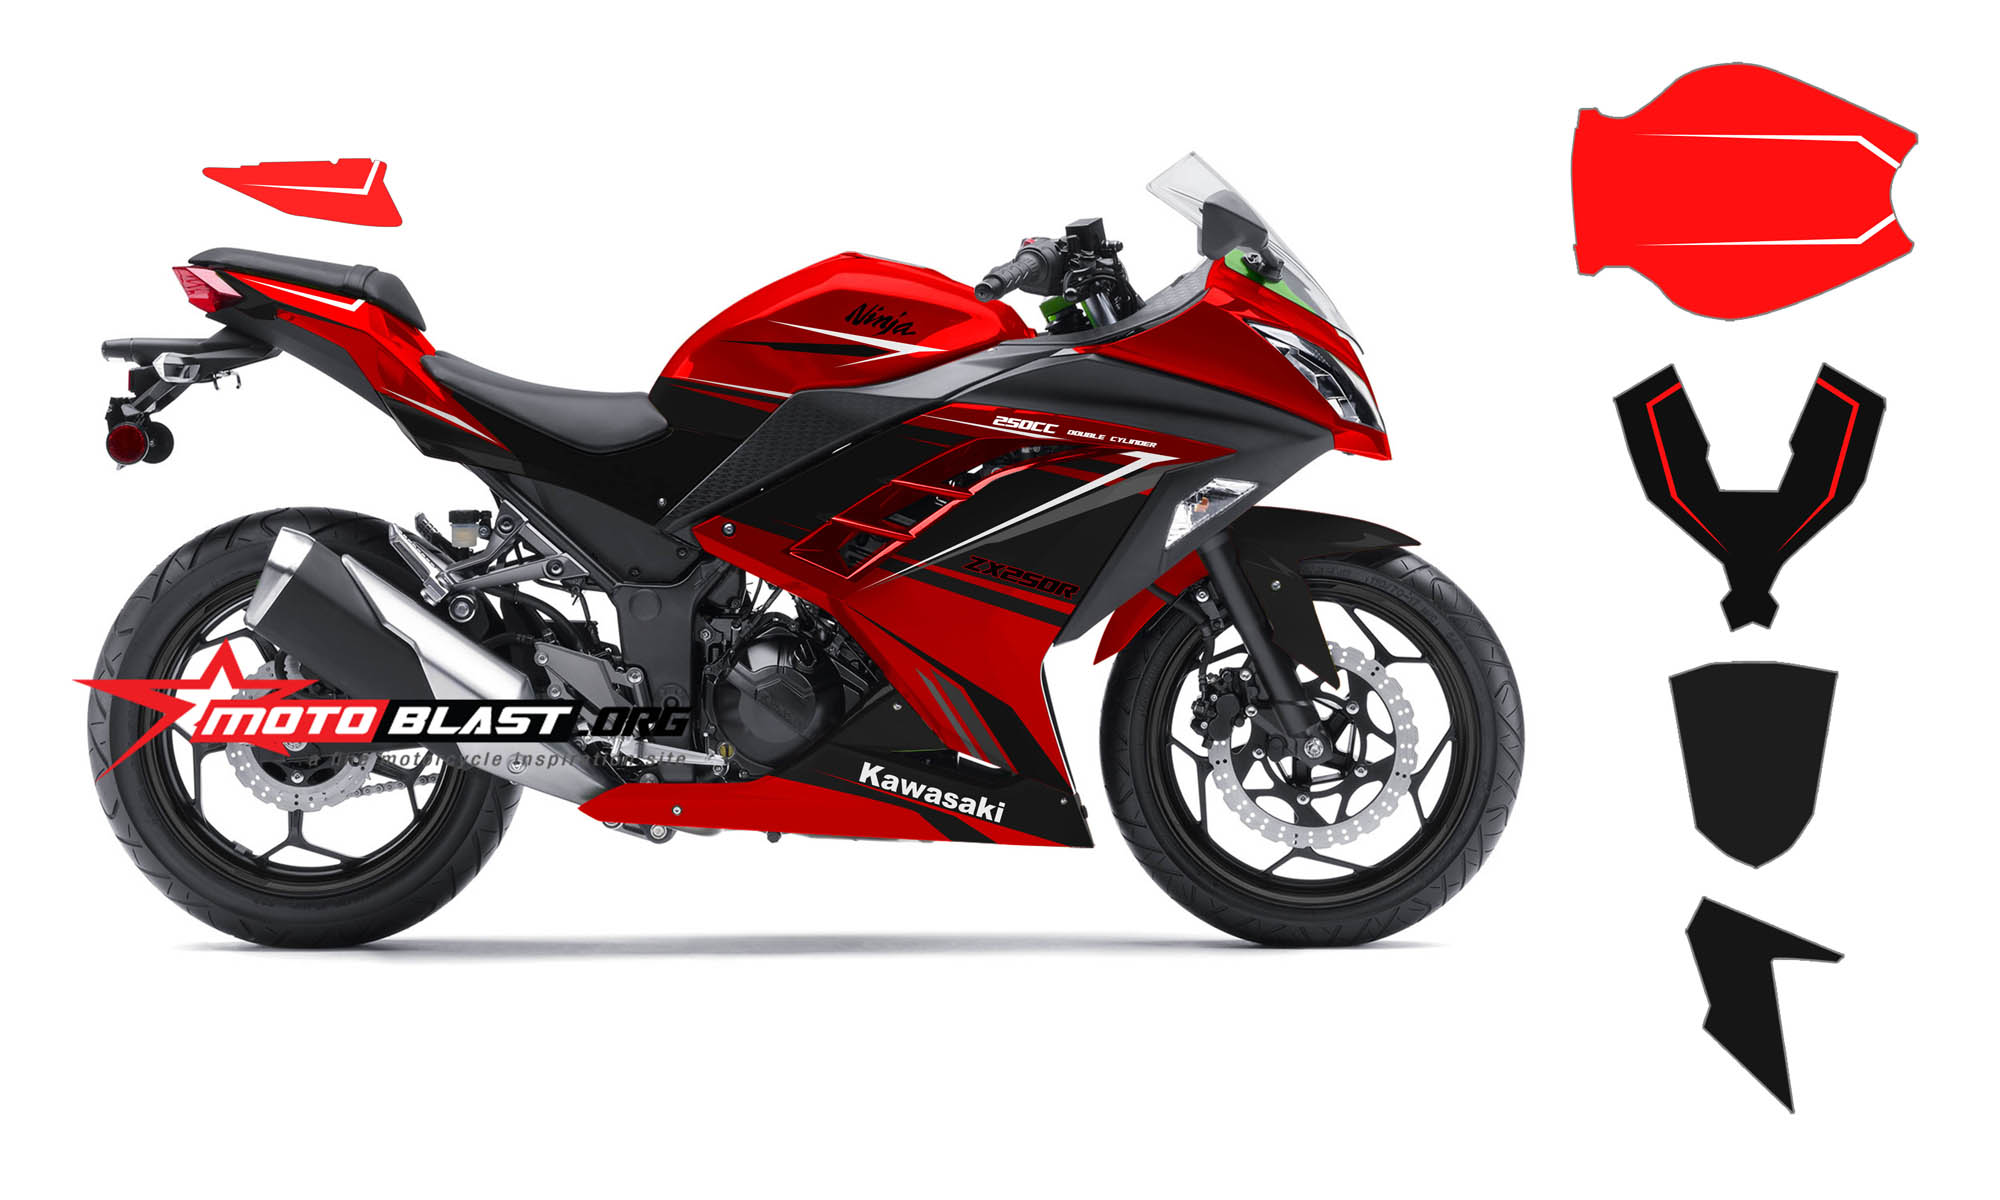 Top modifikasi ninja 250 fi warna merah